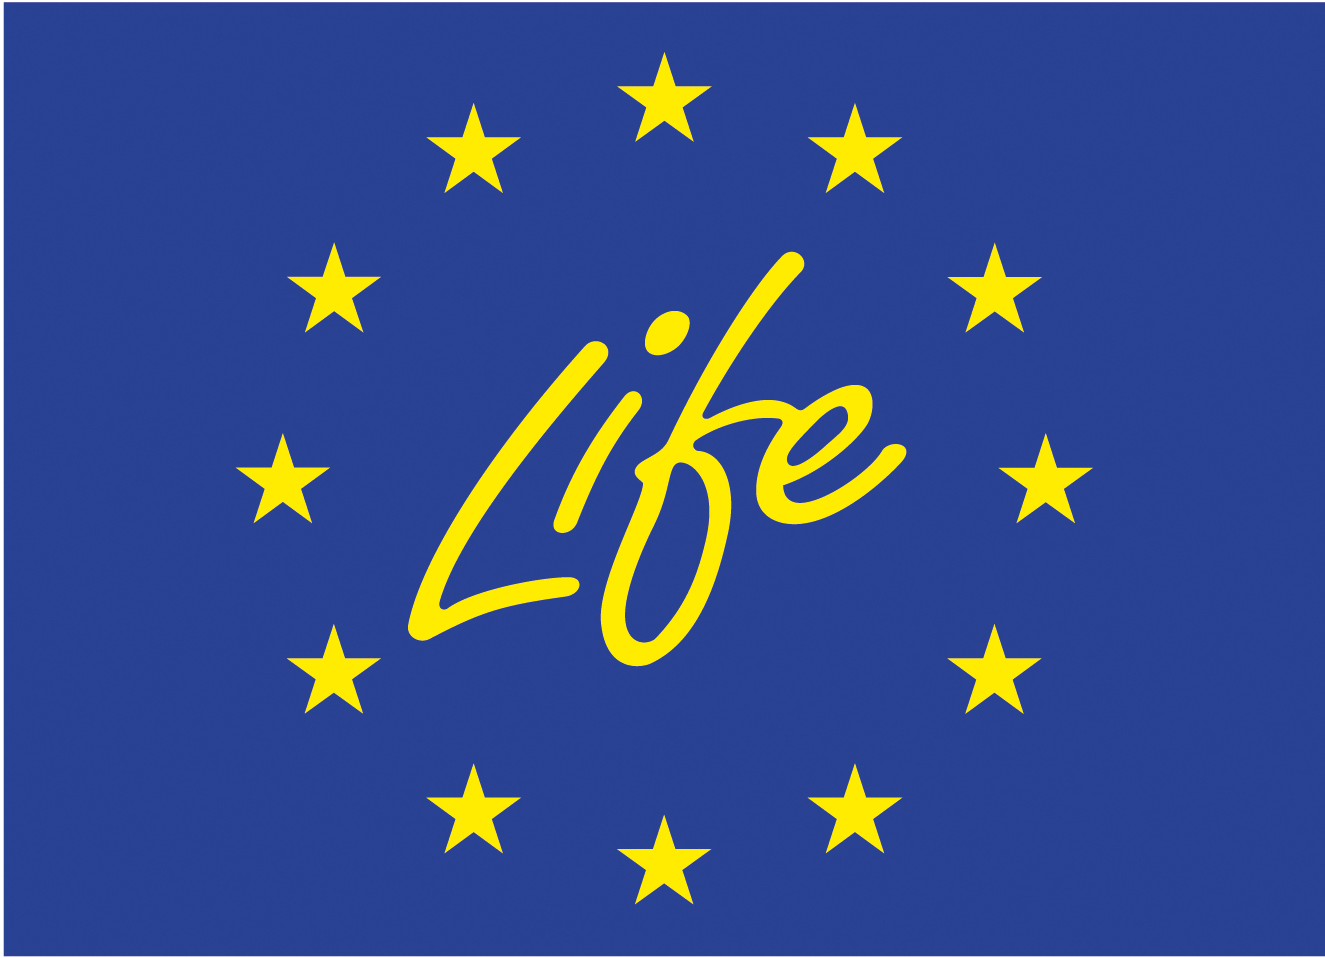 Logo of Life. This is a blue background with the word Life and yellow stars around it.